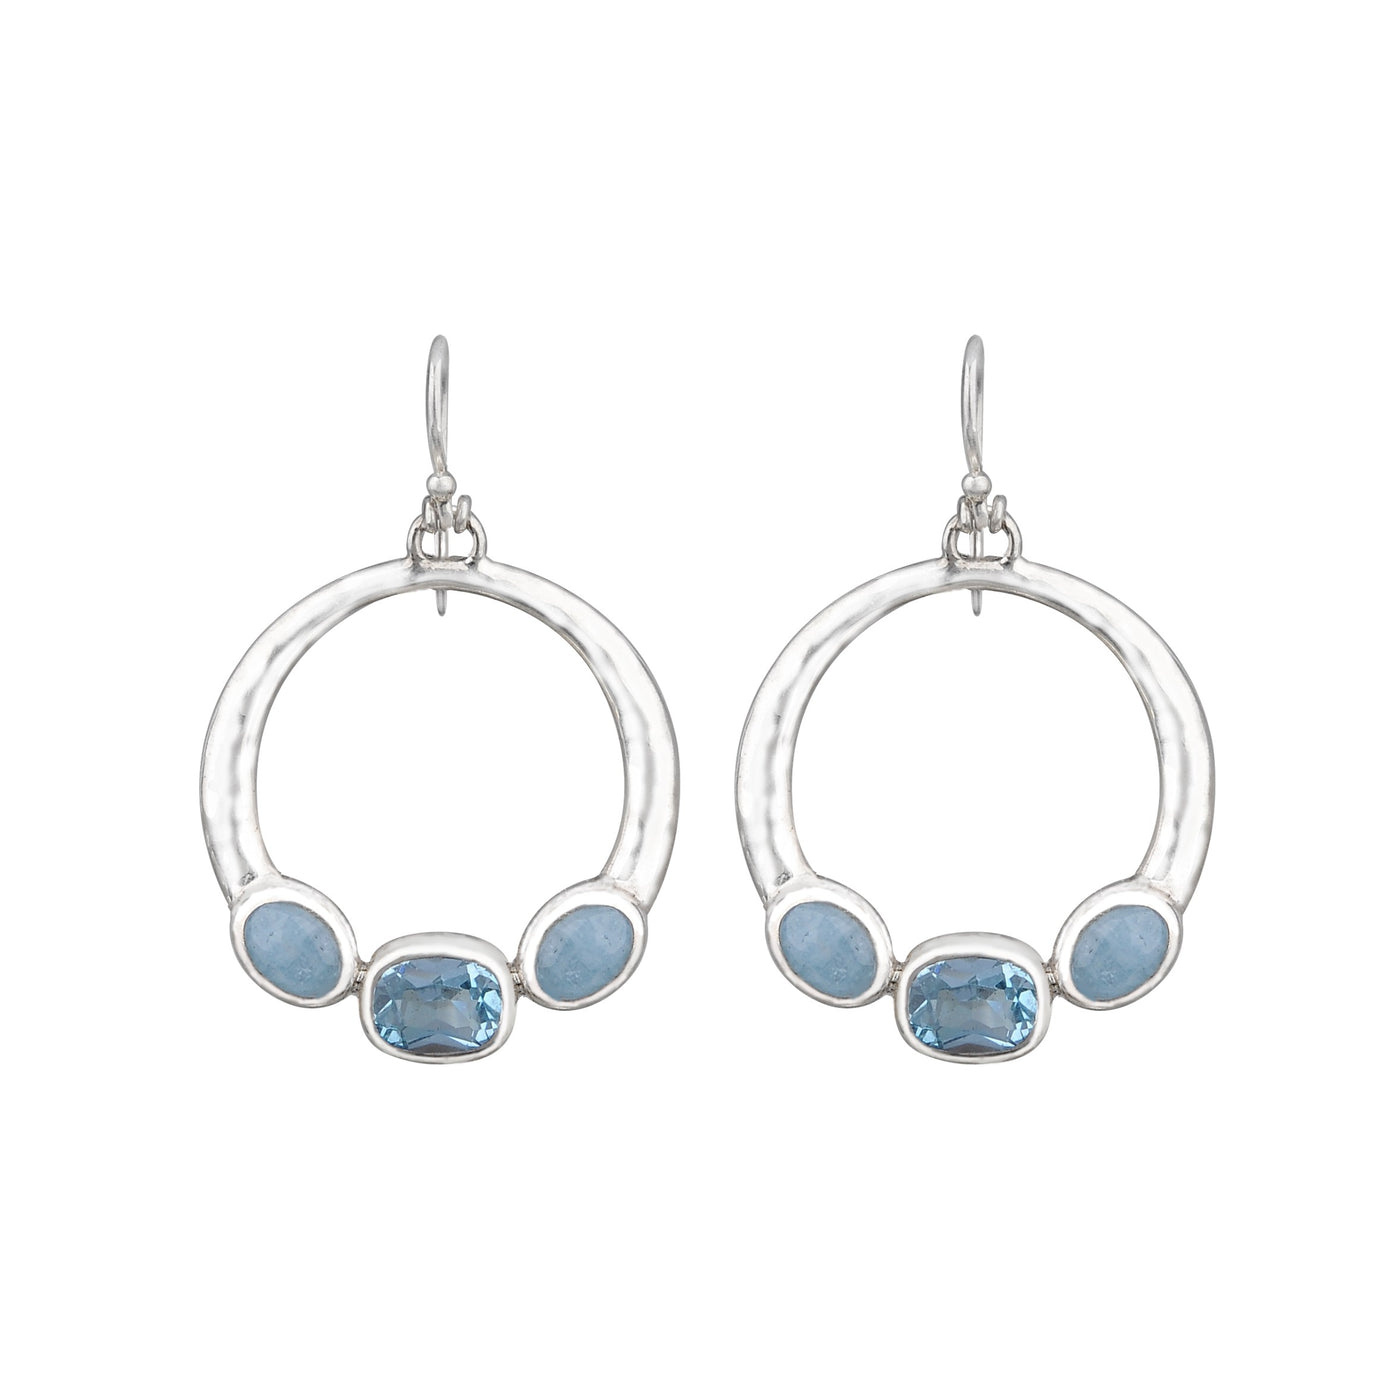 JD E64252 AQUAMARINE & BLUE TOPAZ CIRCLE EARRINGS